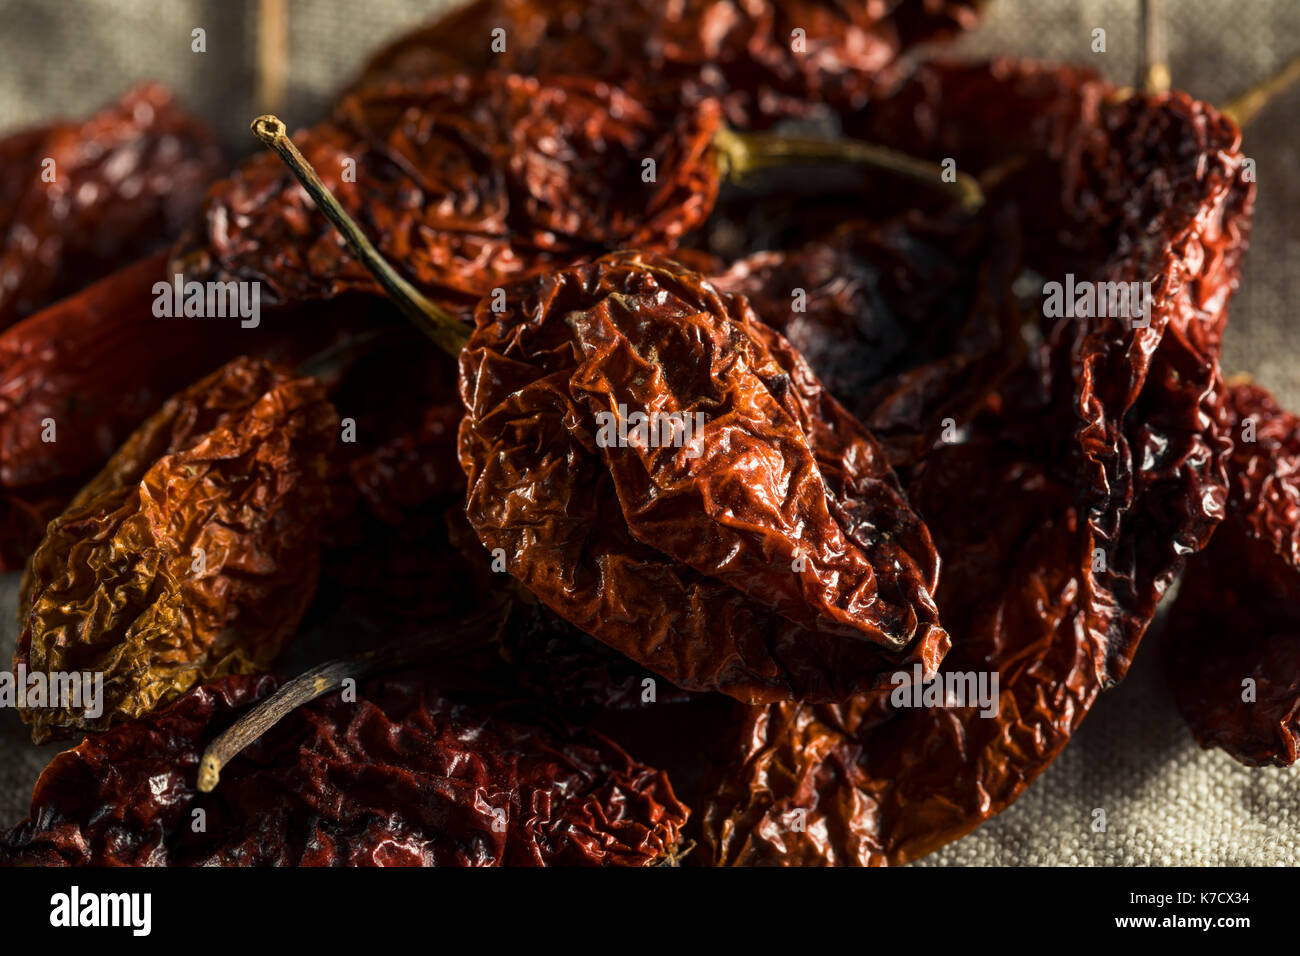 Super Hot Spicy Scorpion Bhut Jolokia Pepper Ready to Use Stock Photo